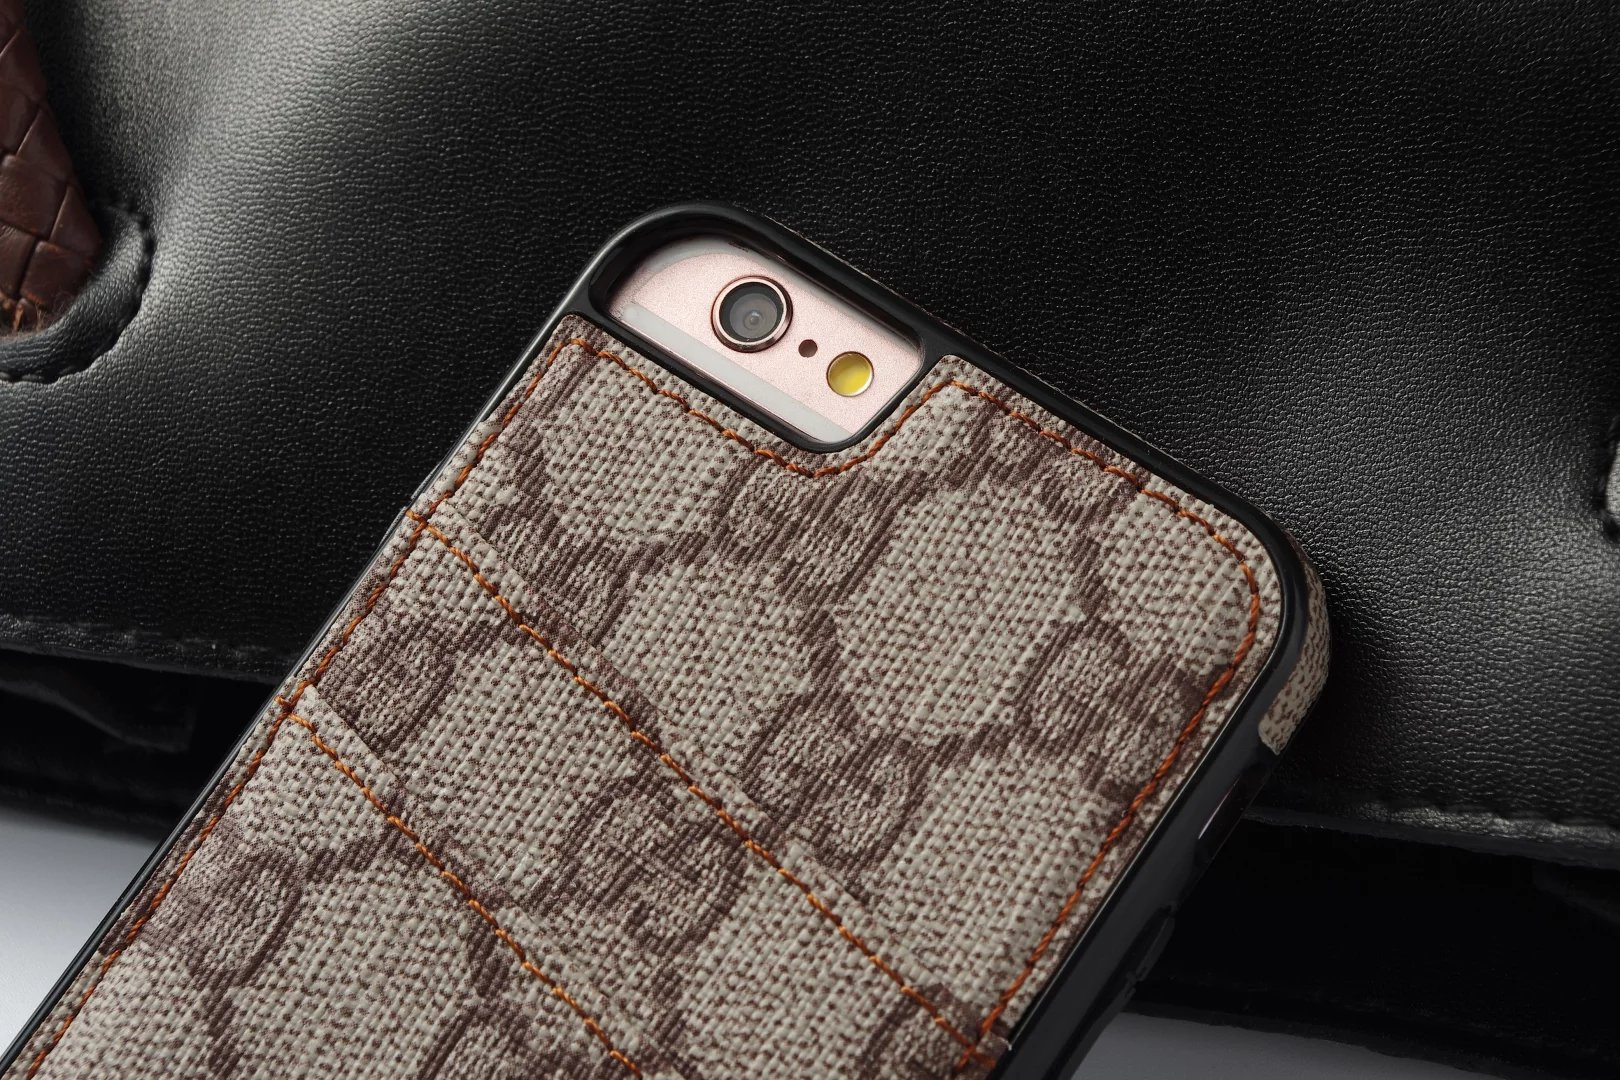 iphone 8 Plus case apple iphone 8 Plus and 8 Plus cases Louis Vuitton iphone 8 Plus case iPhone 8 Plus cover personalised fashion case top 8 Plus cases 6 s cases customize your iphone case iphone 8 Plus case official